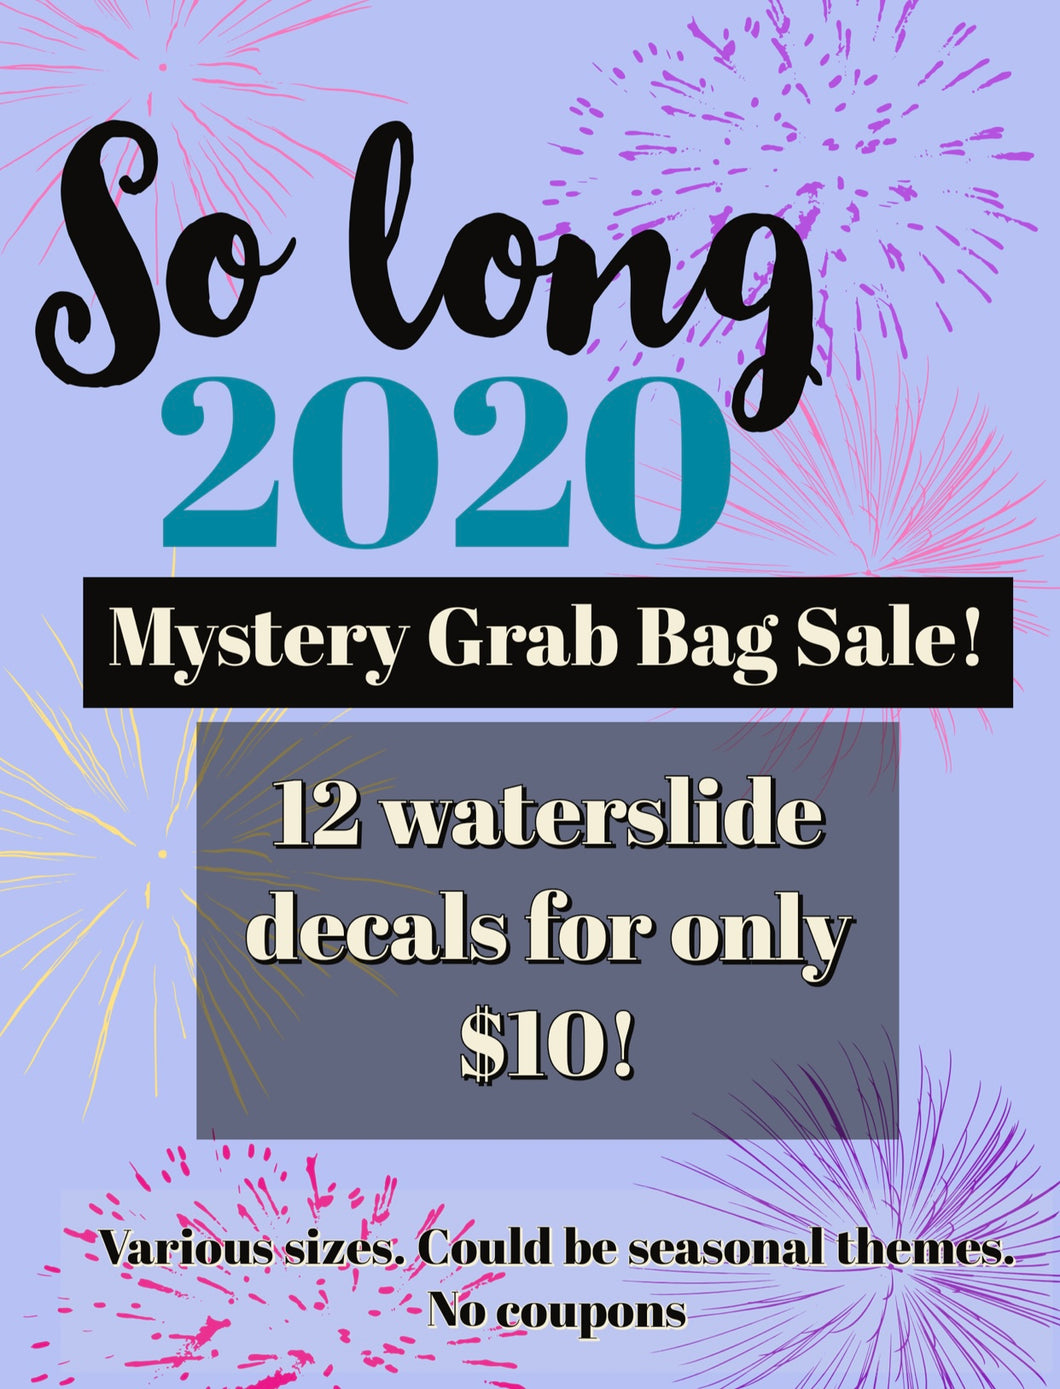 So long 2020 Mystery Grab Bag 12 Waterslides